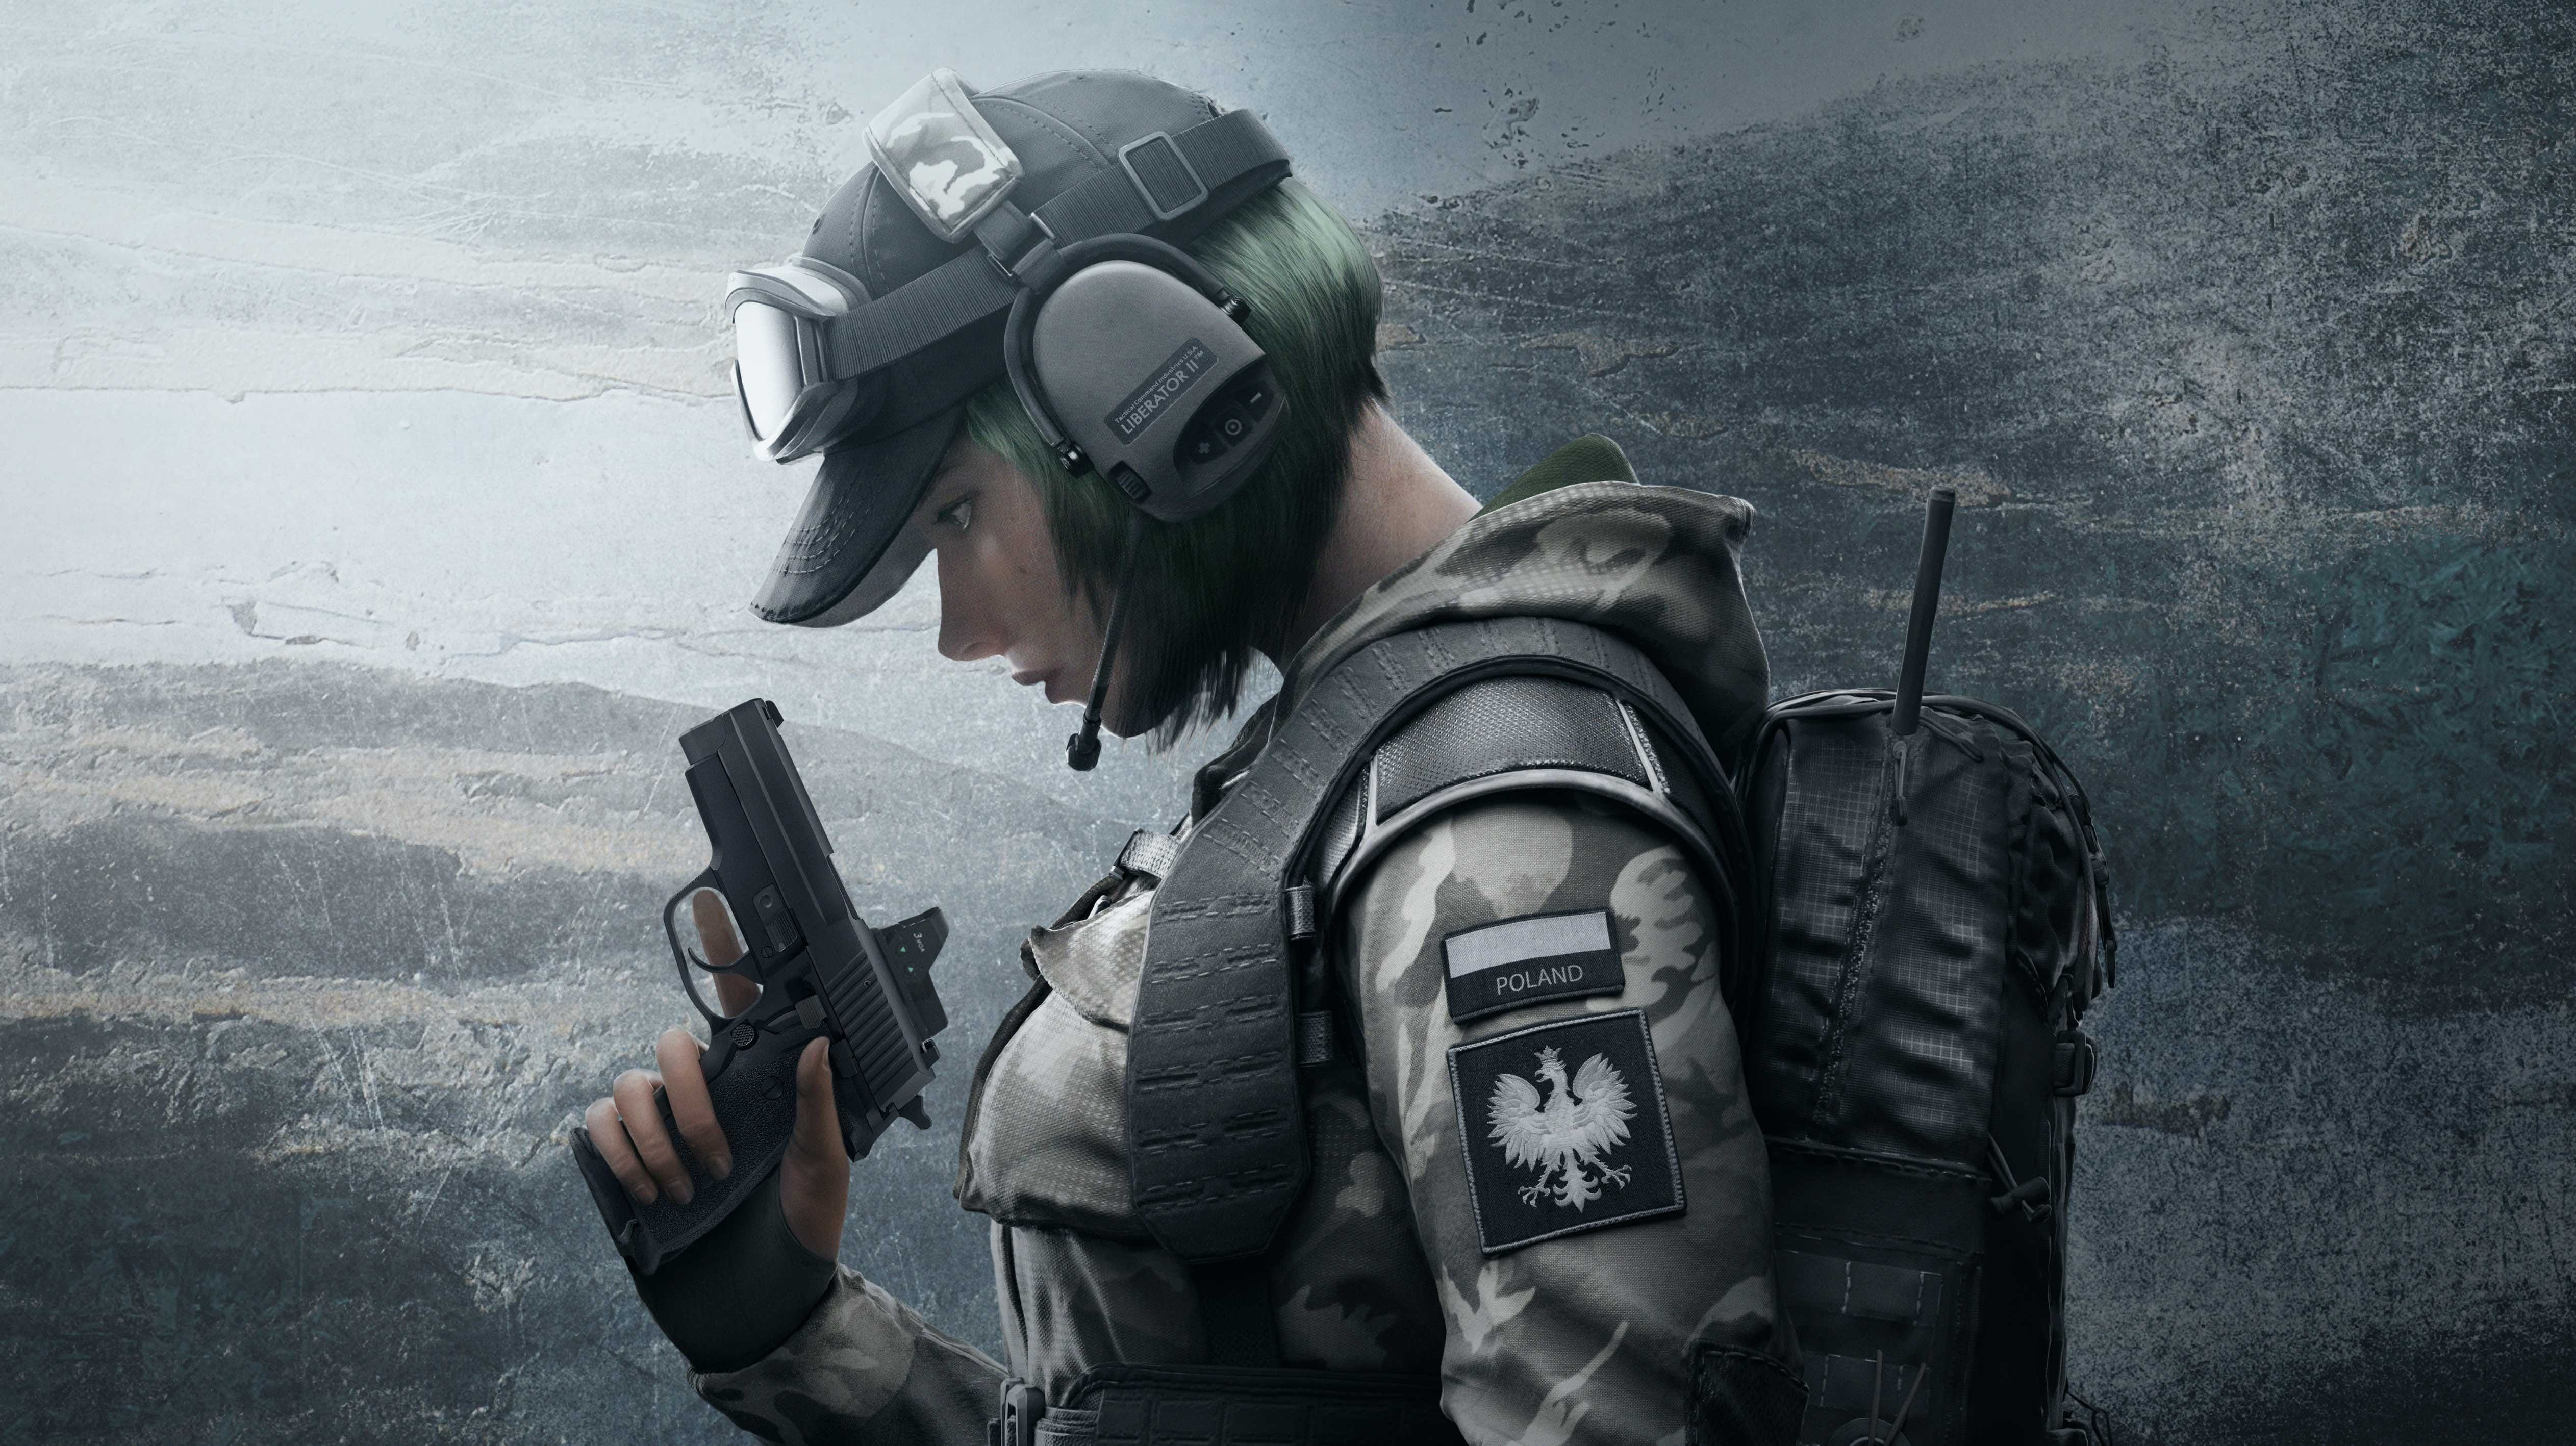 Tom Clancys Rainbow Six Siege Soldier 5k Tom Clancys Rainbow Six Siege  Soldier 5k is an HD desktop wallpaper posted in our free image collection  of gaming ClipartLook.com